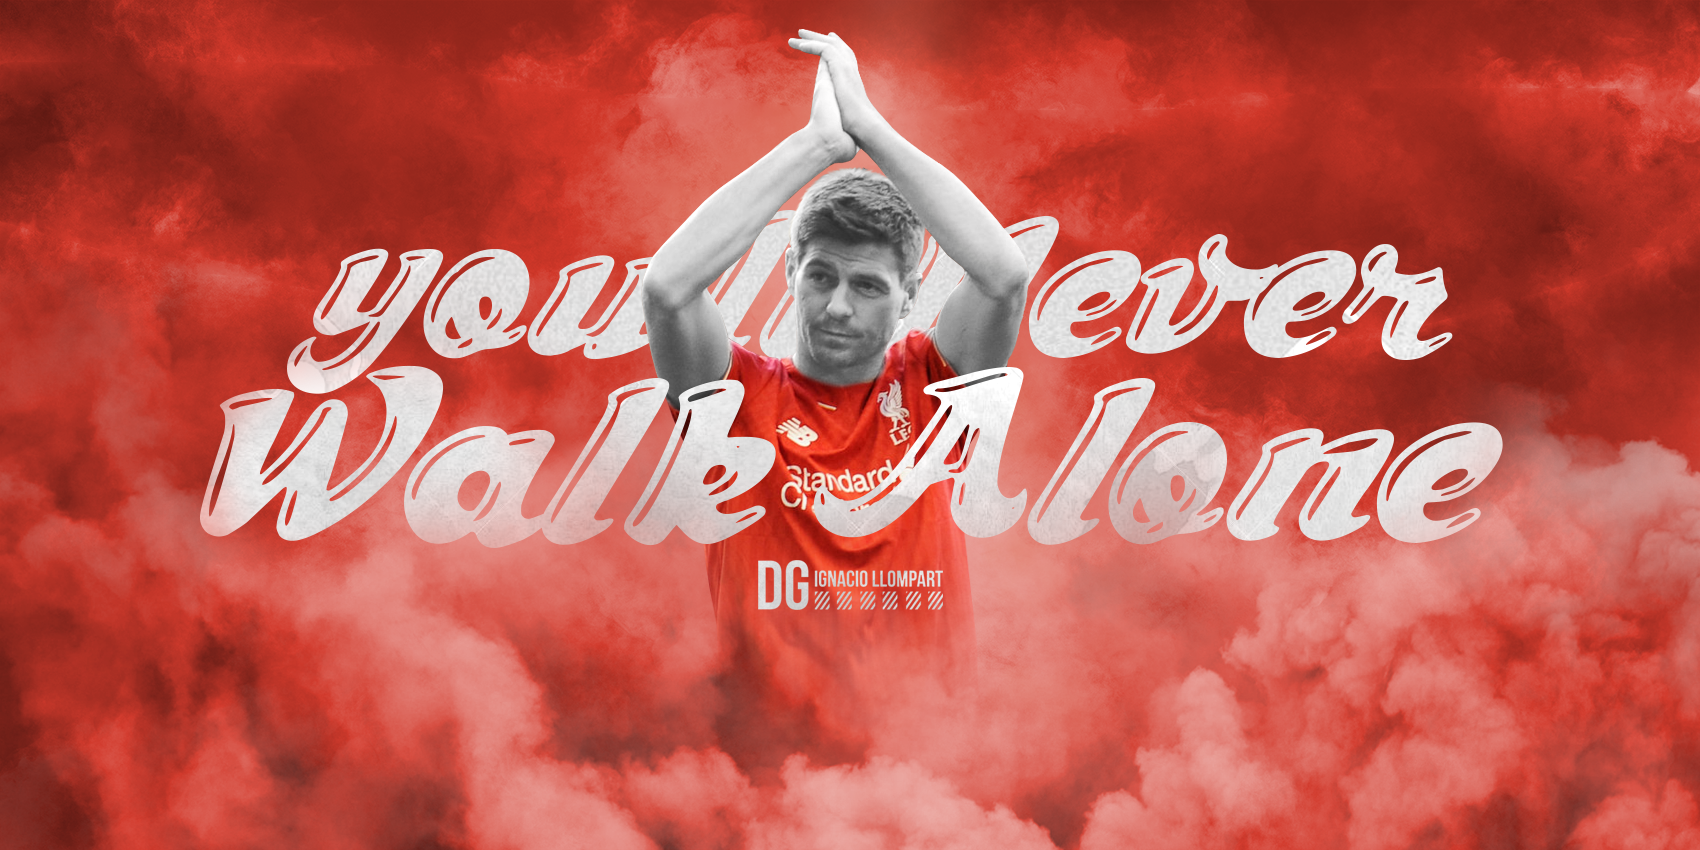 Steven Gerrard   Youll Never Walk Alone by ignaxxx on 1700x850